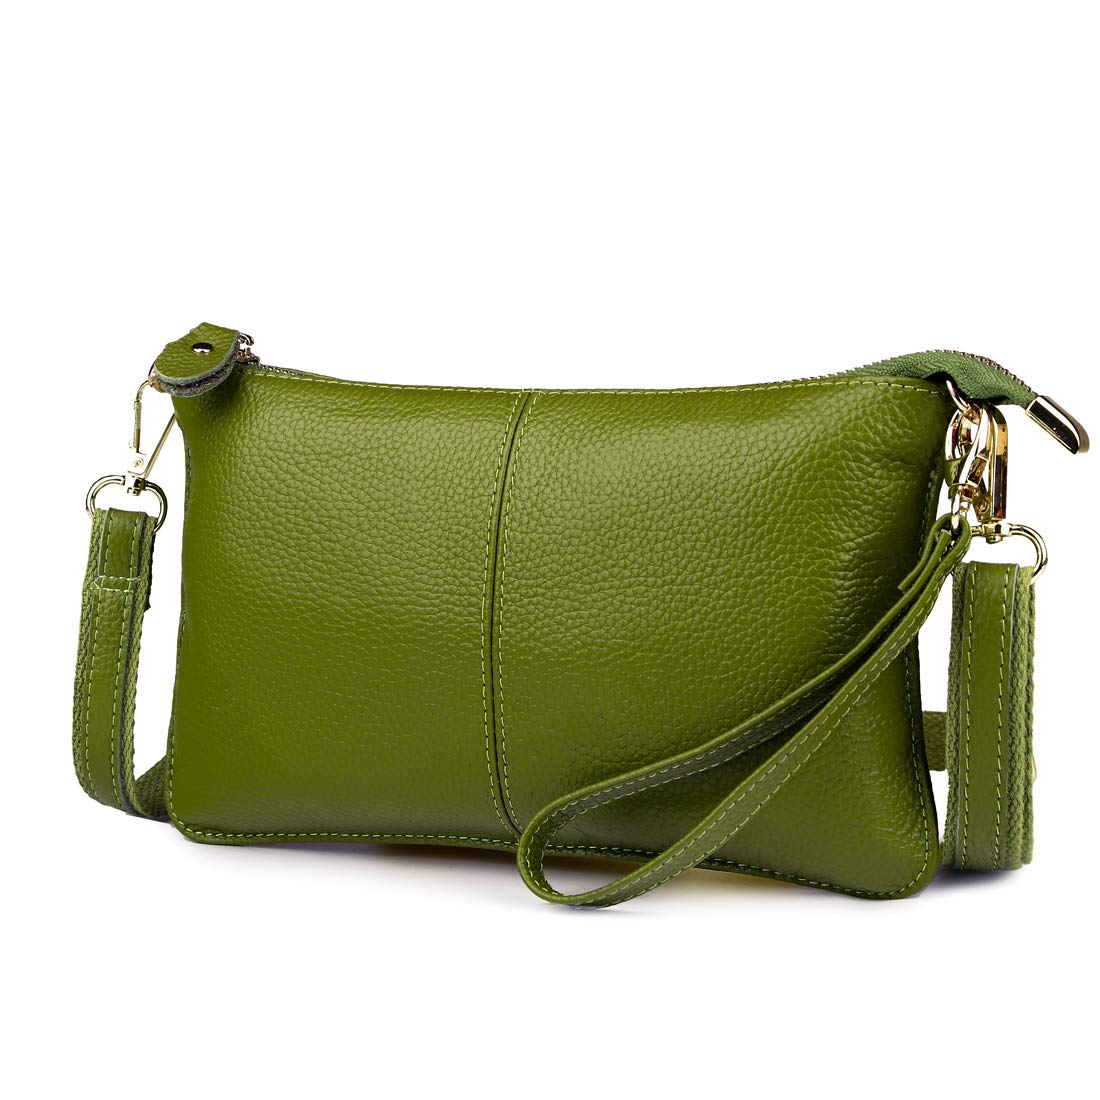 Artwell Women Genuine Leather Clutch Handbag Fashion Wristlet Purse Envelop Crossbody Shoulder Bag with Removable Long Strap for Party Wedding Shopping (Green)